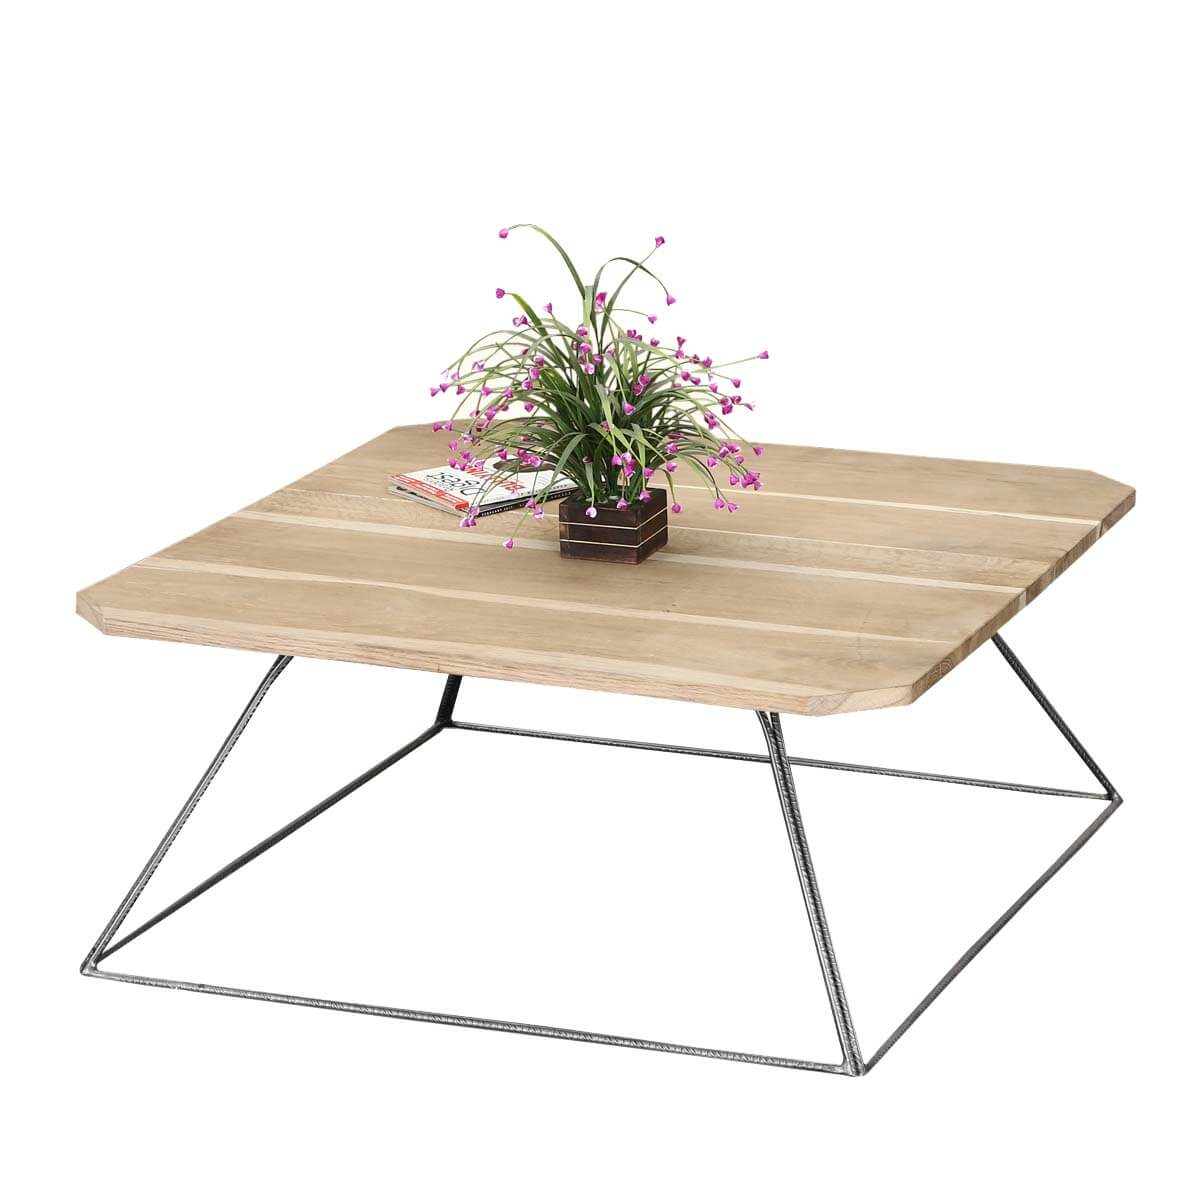 Trapezoidal Prism Base Solid Wood Iron Coffee Table